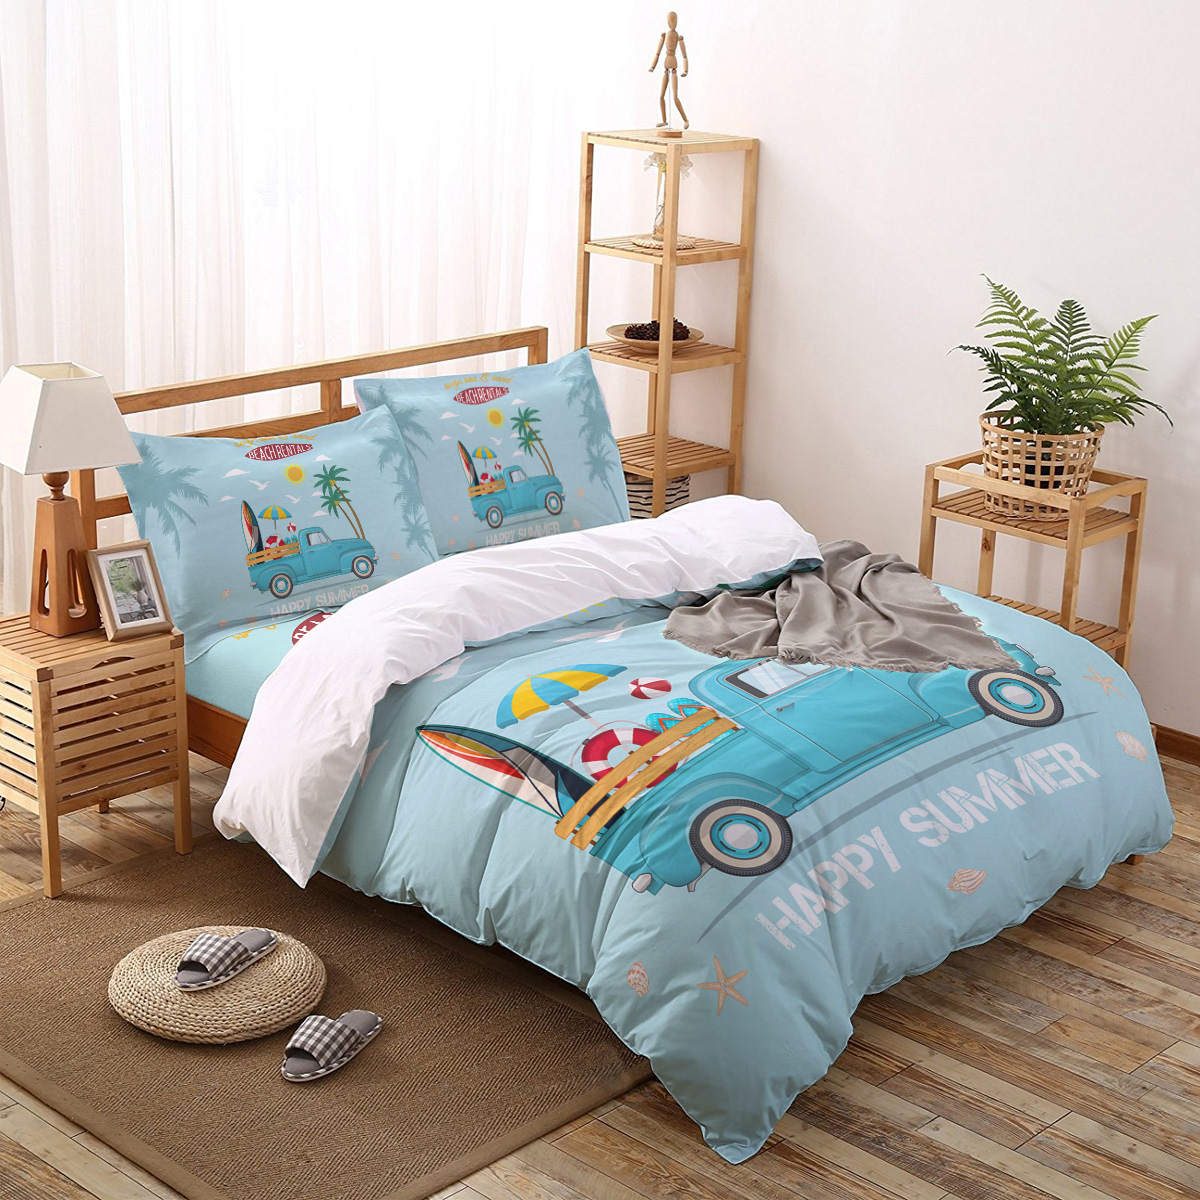 Surf Beach Truck Vacation Palm Tree Bedding Set Four Sets Of Customized Bed Sheets Bedding Sets Bedding Set Luxury Bedding Sets Aliexpress